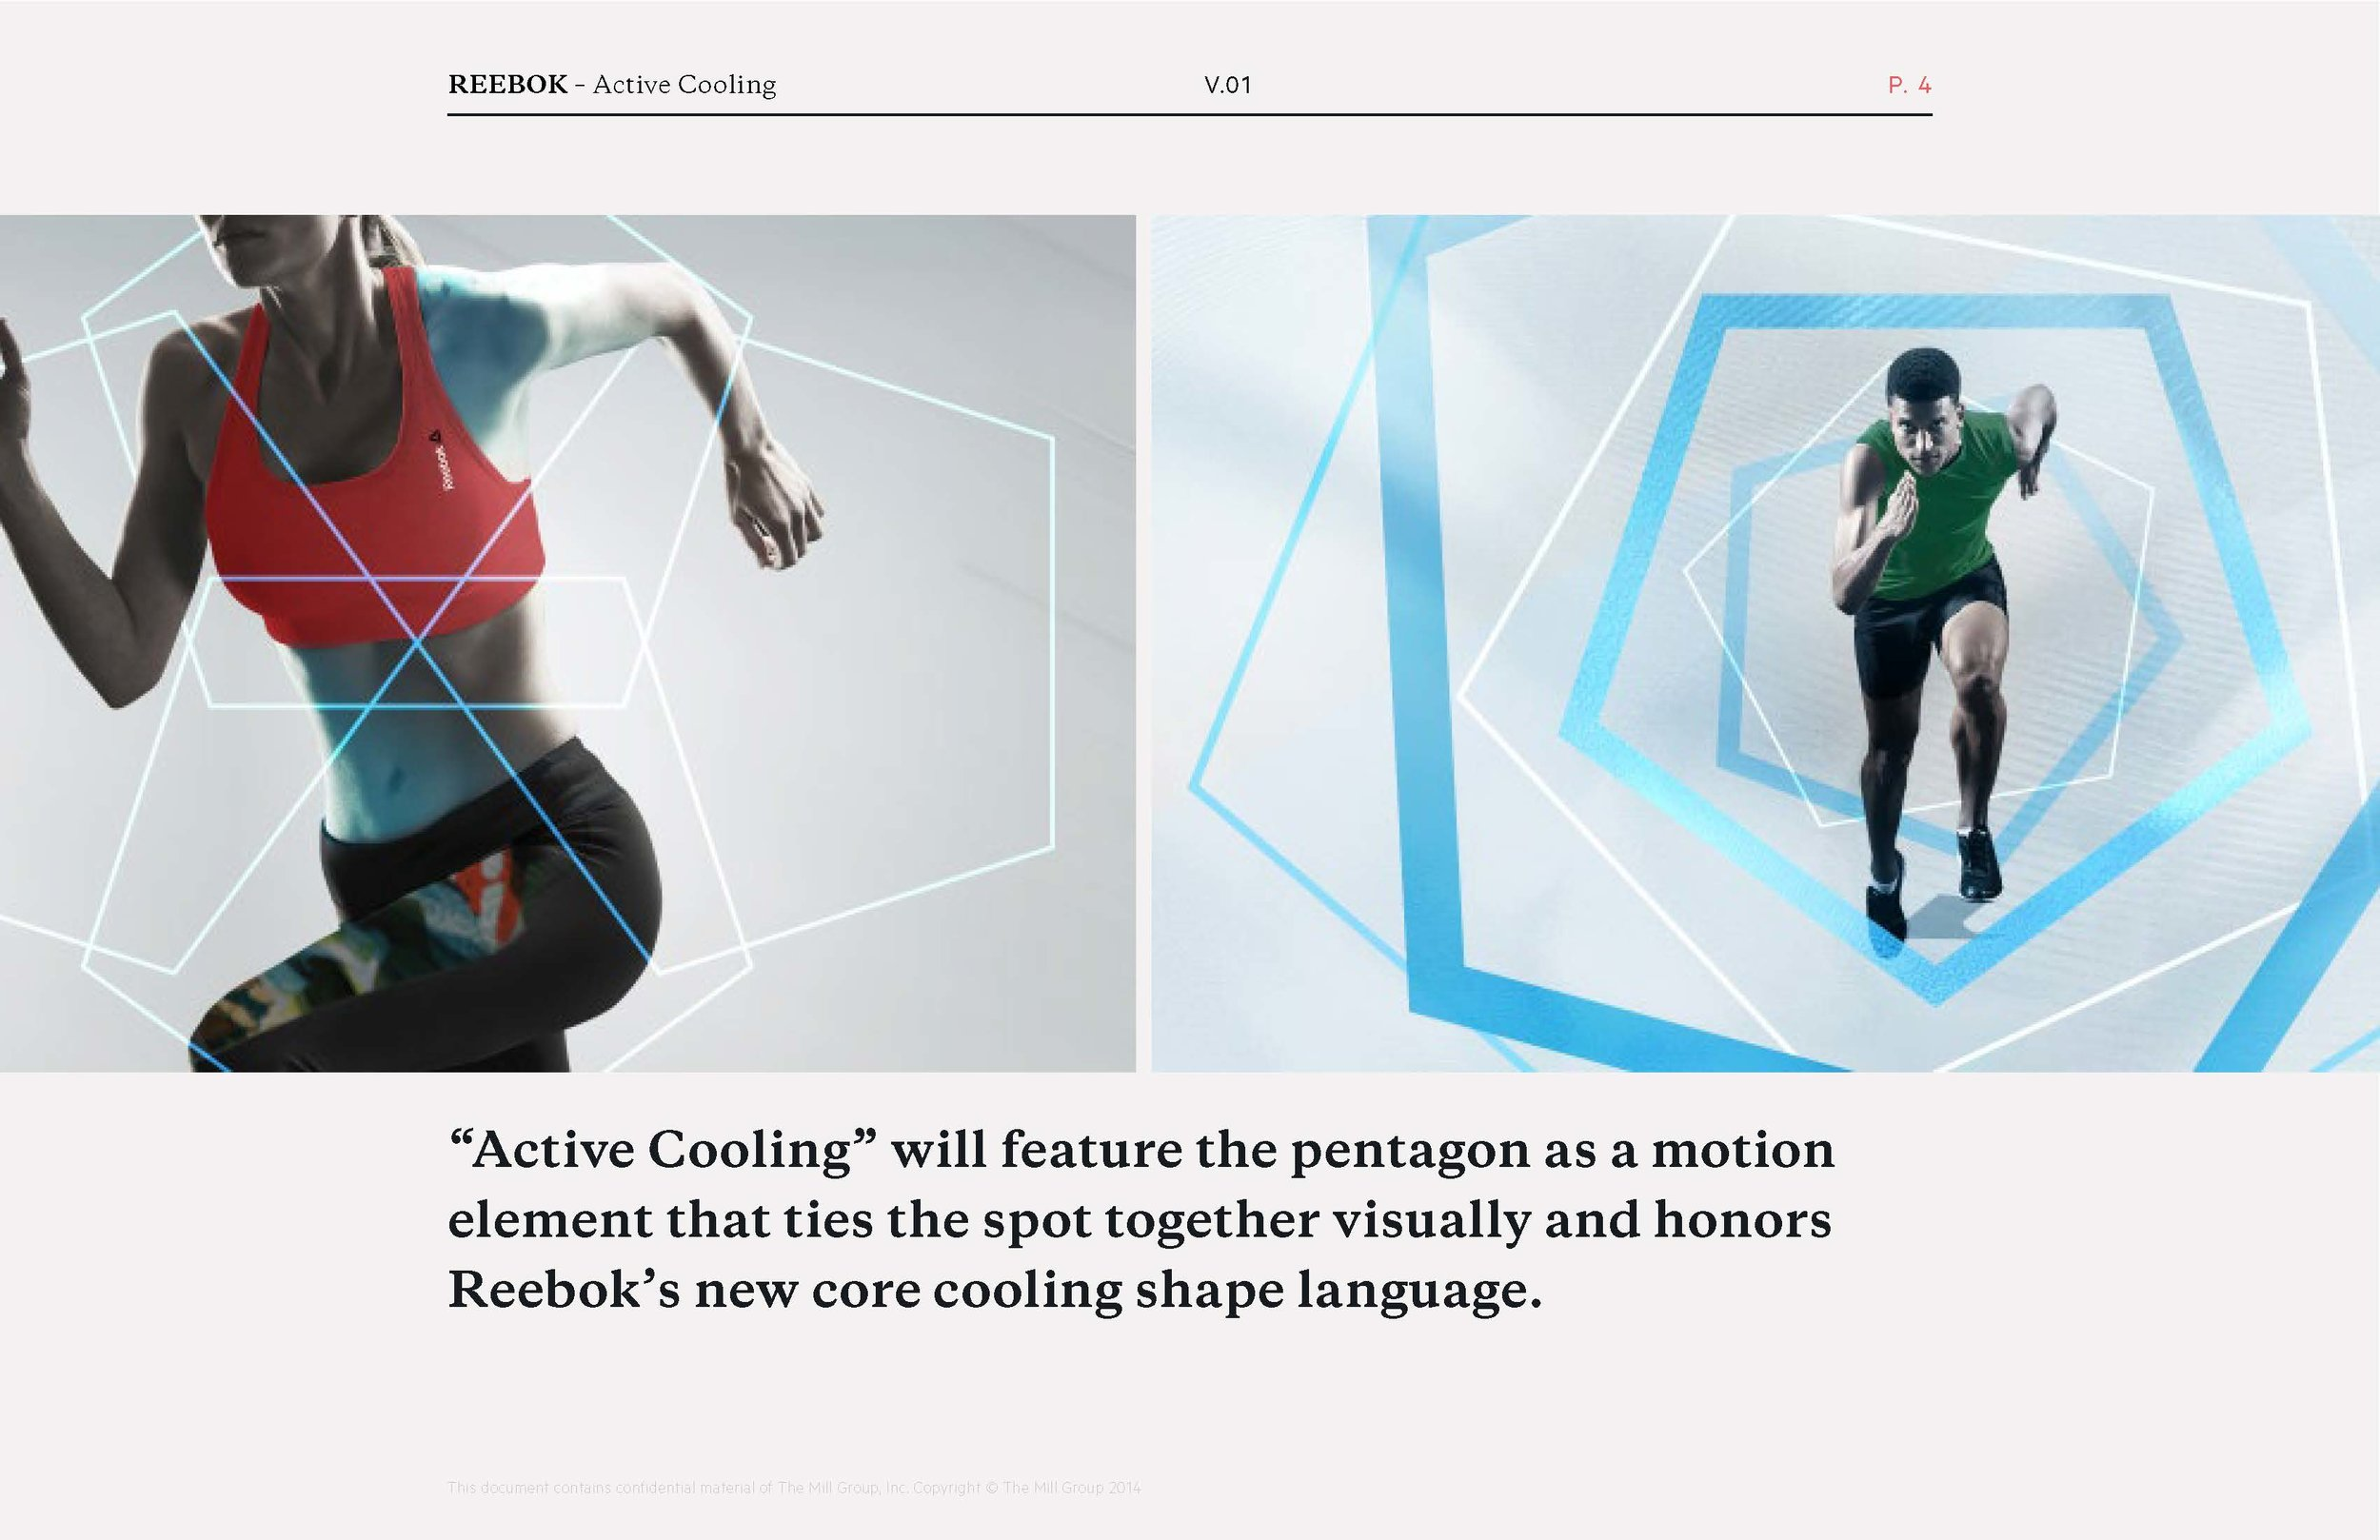 031914_Mill_Reebok_Active_Cooling_NW_17_Page_04.jpg